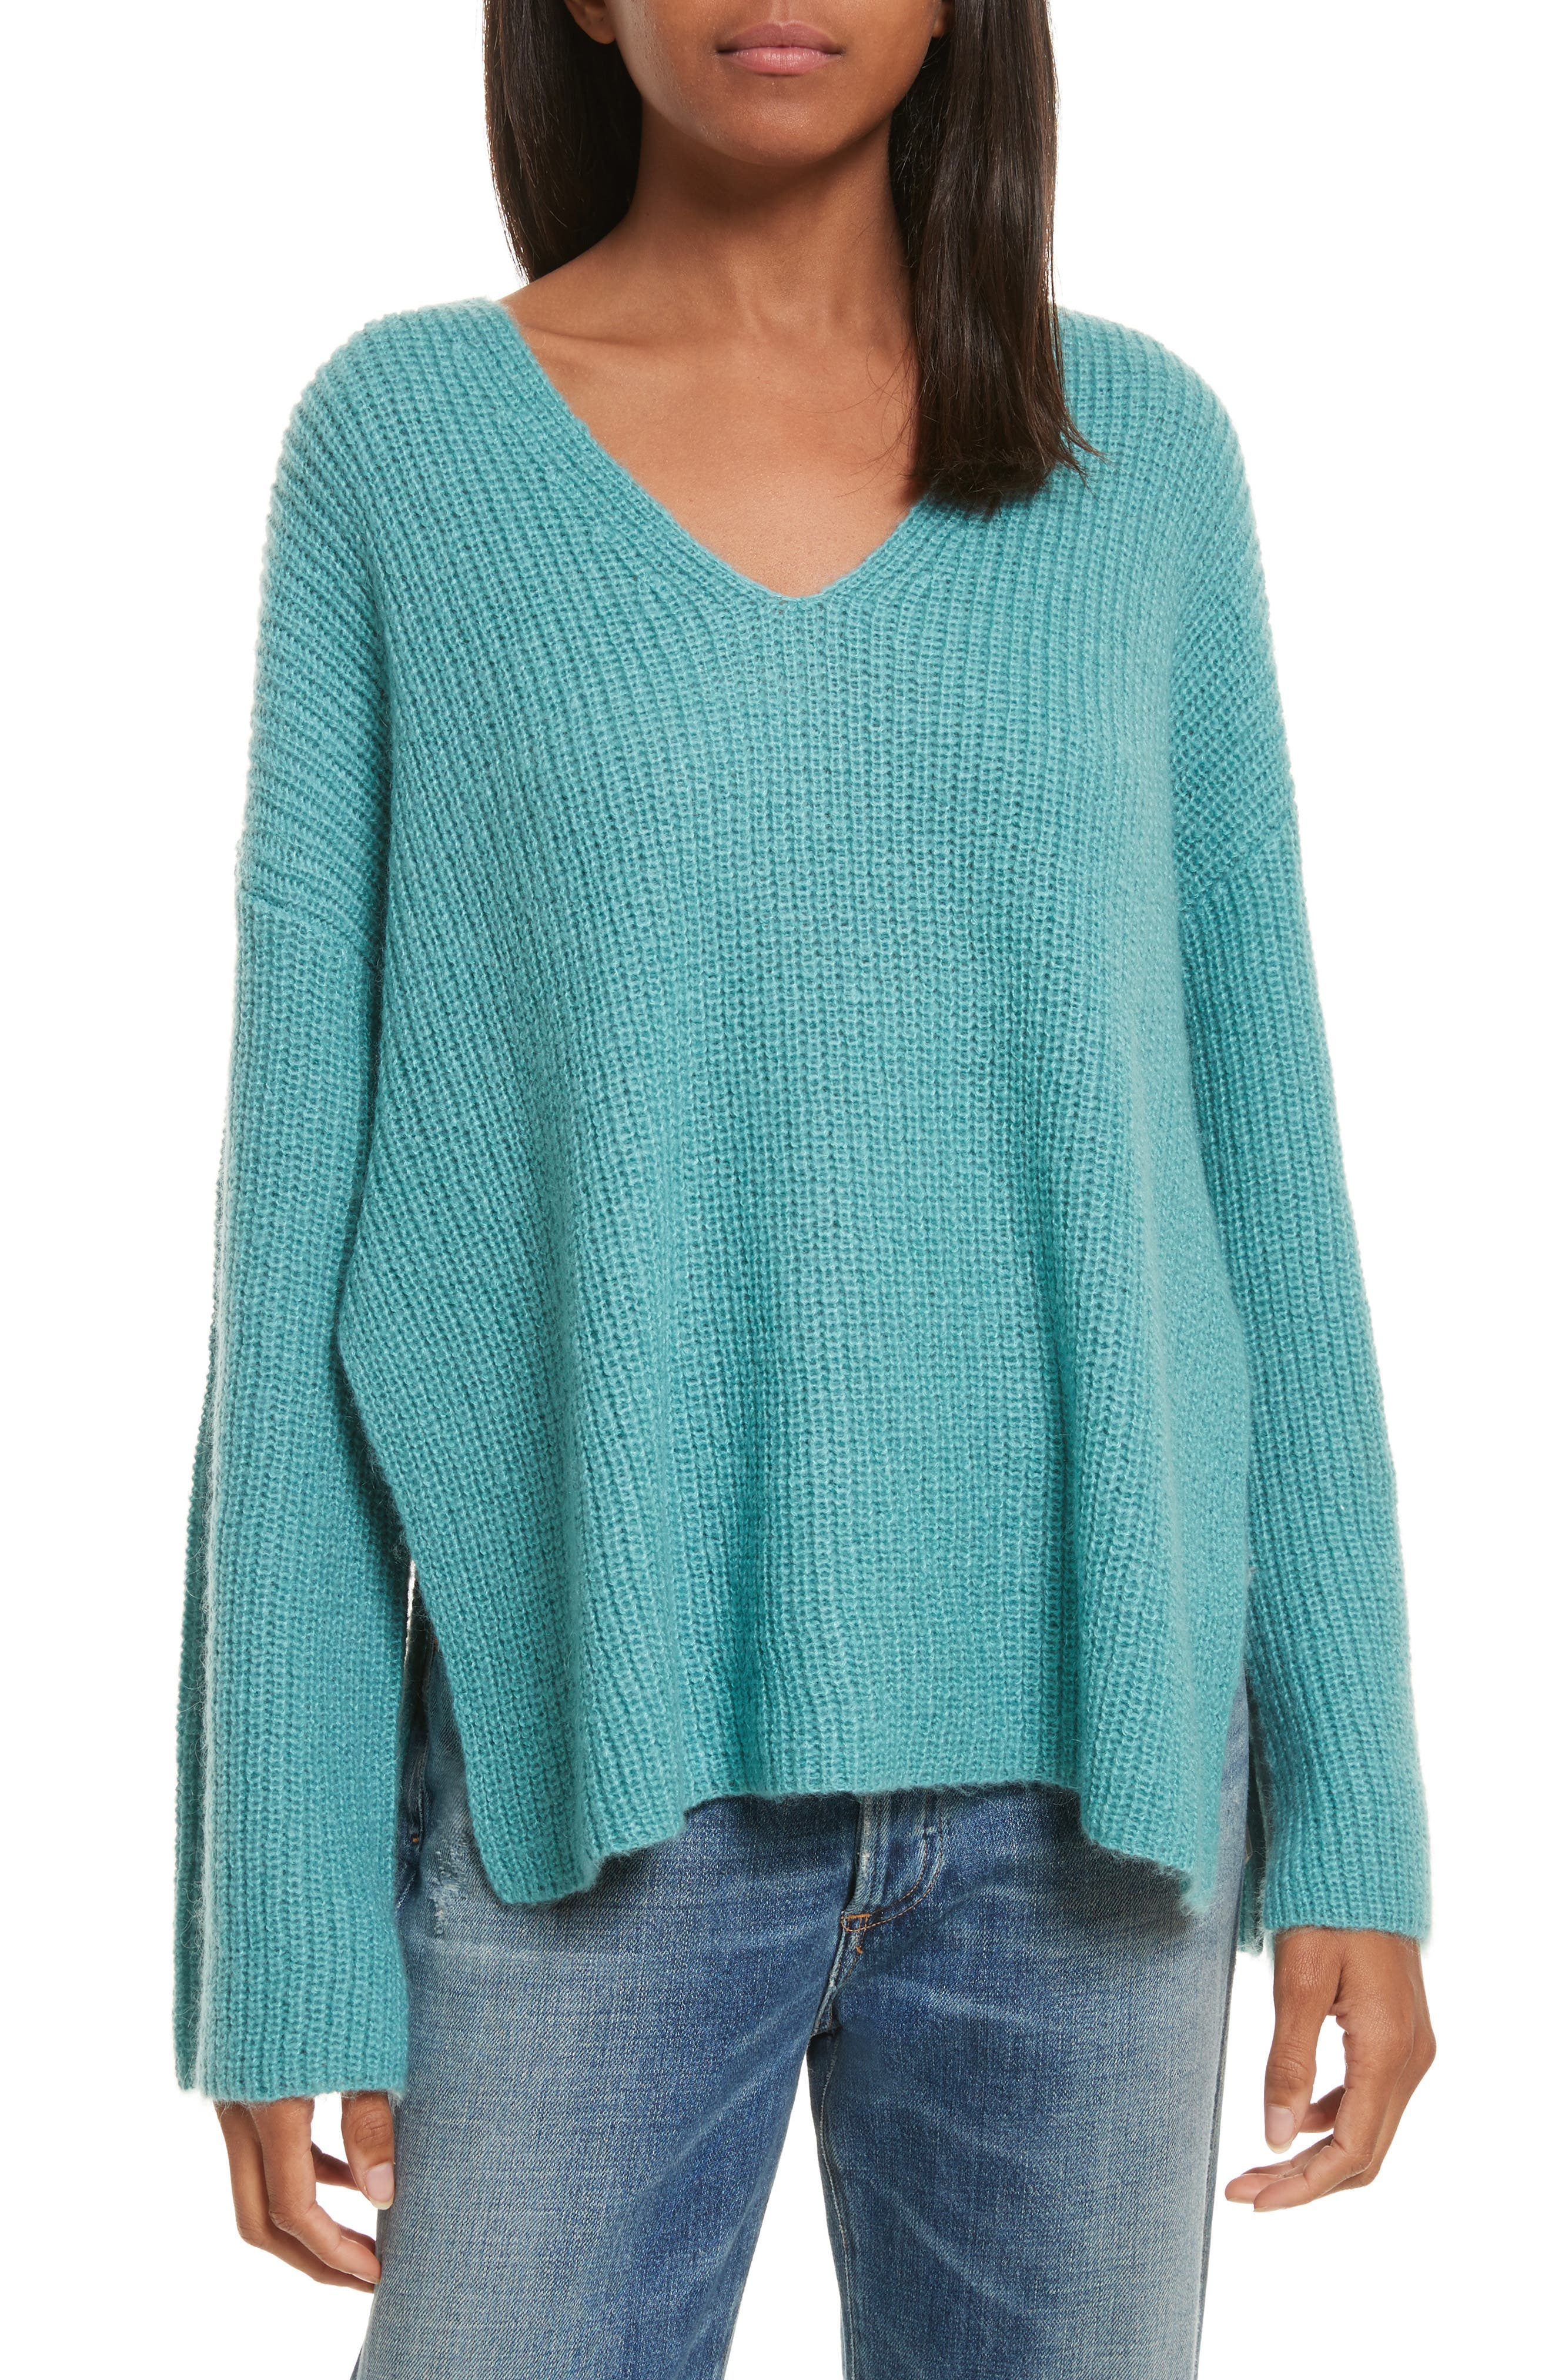 Remi Oversize Sweater,                         Main,                         color, Hydro